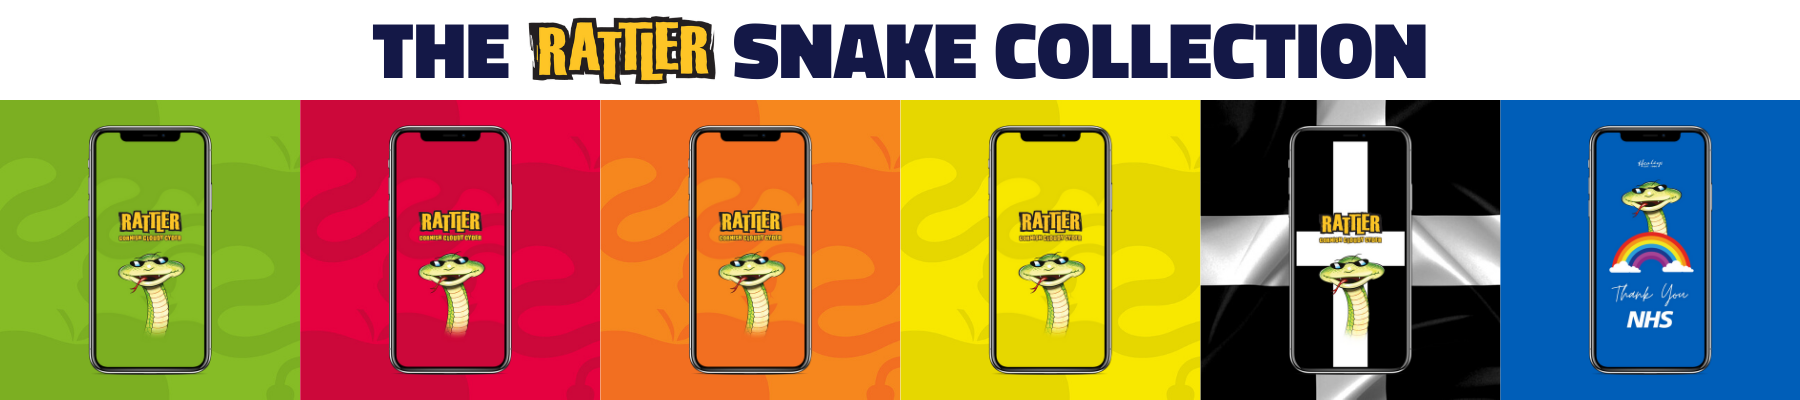 The Rattler Snake Collection